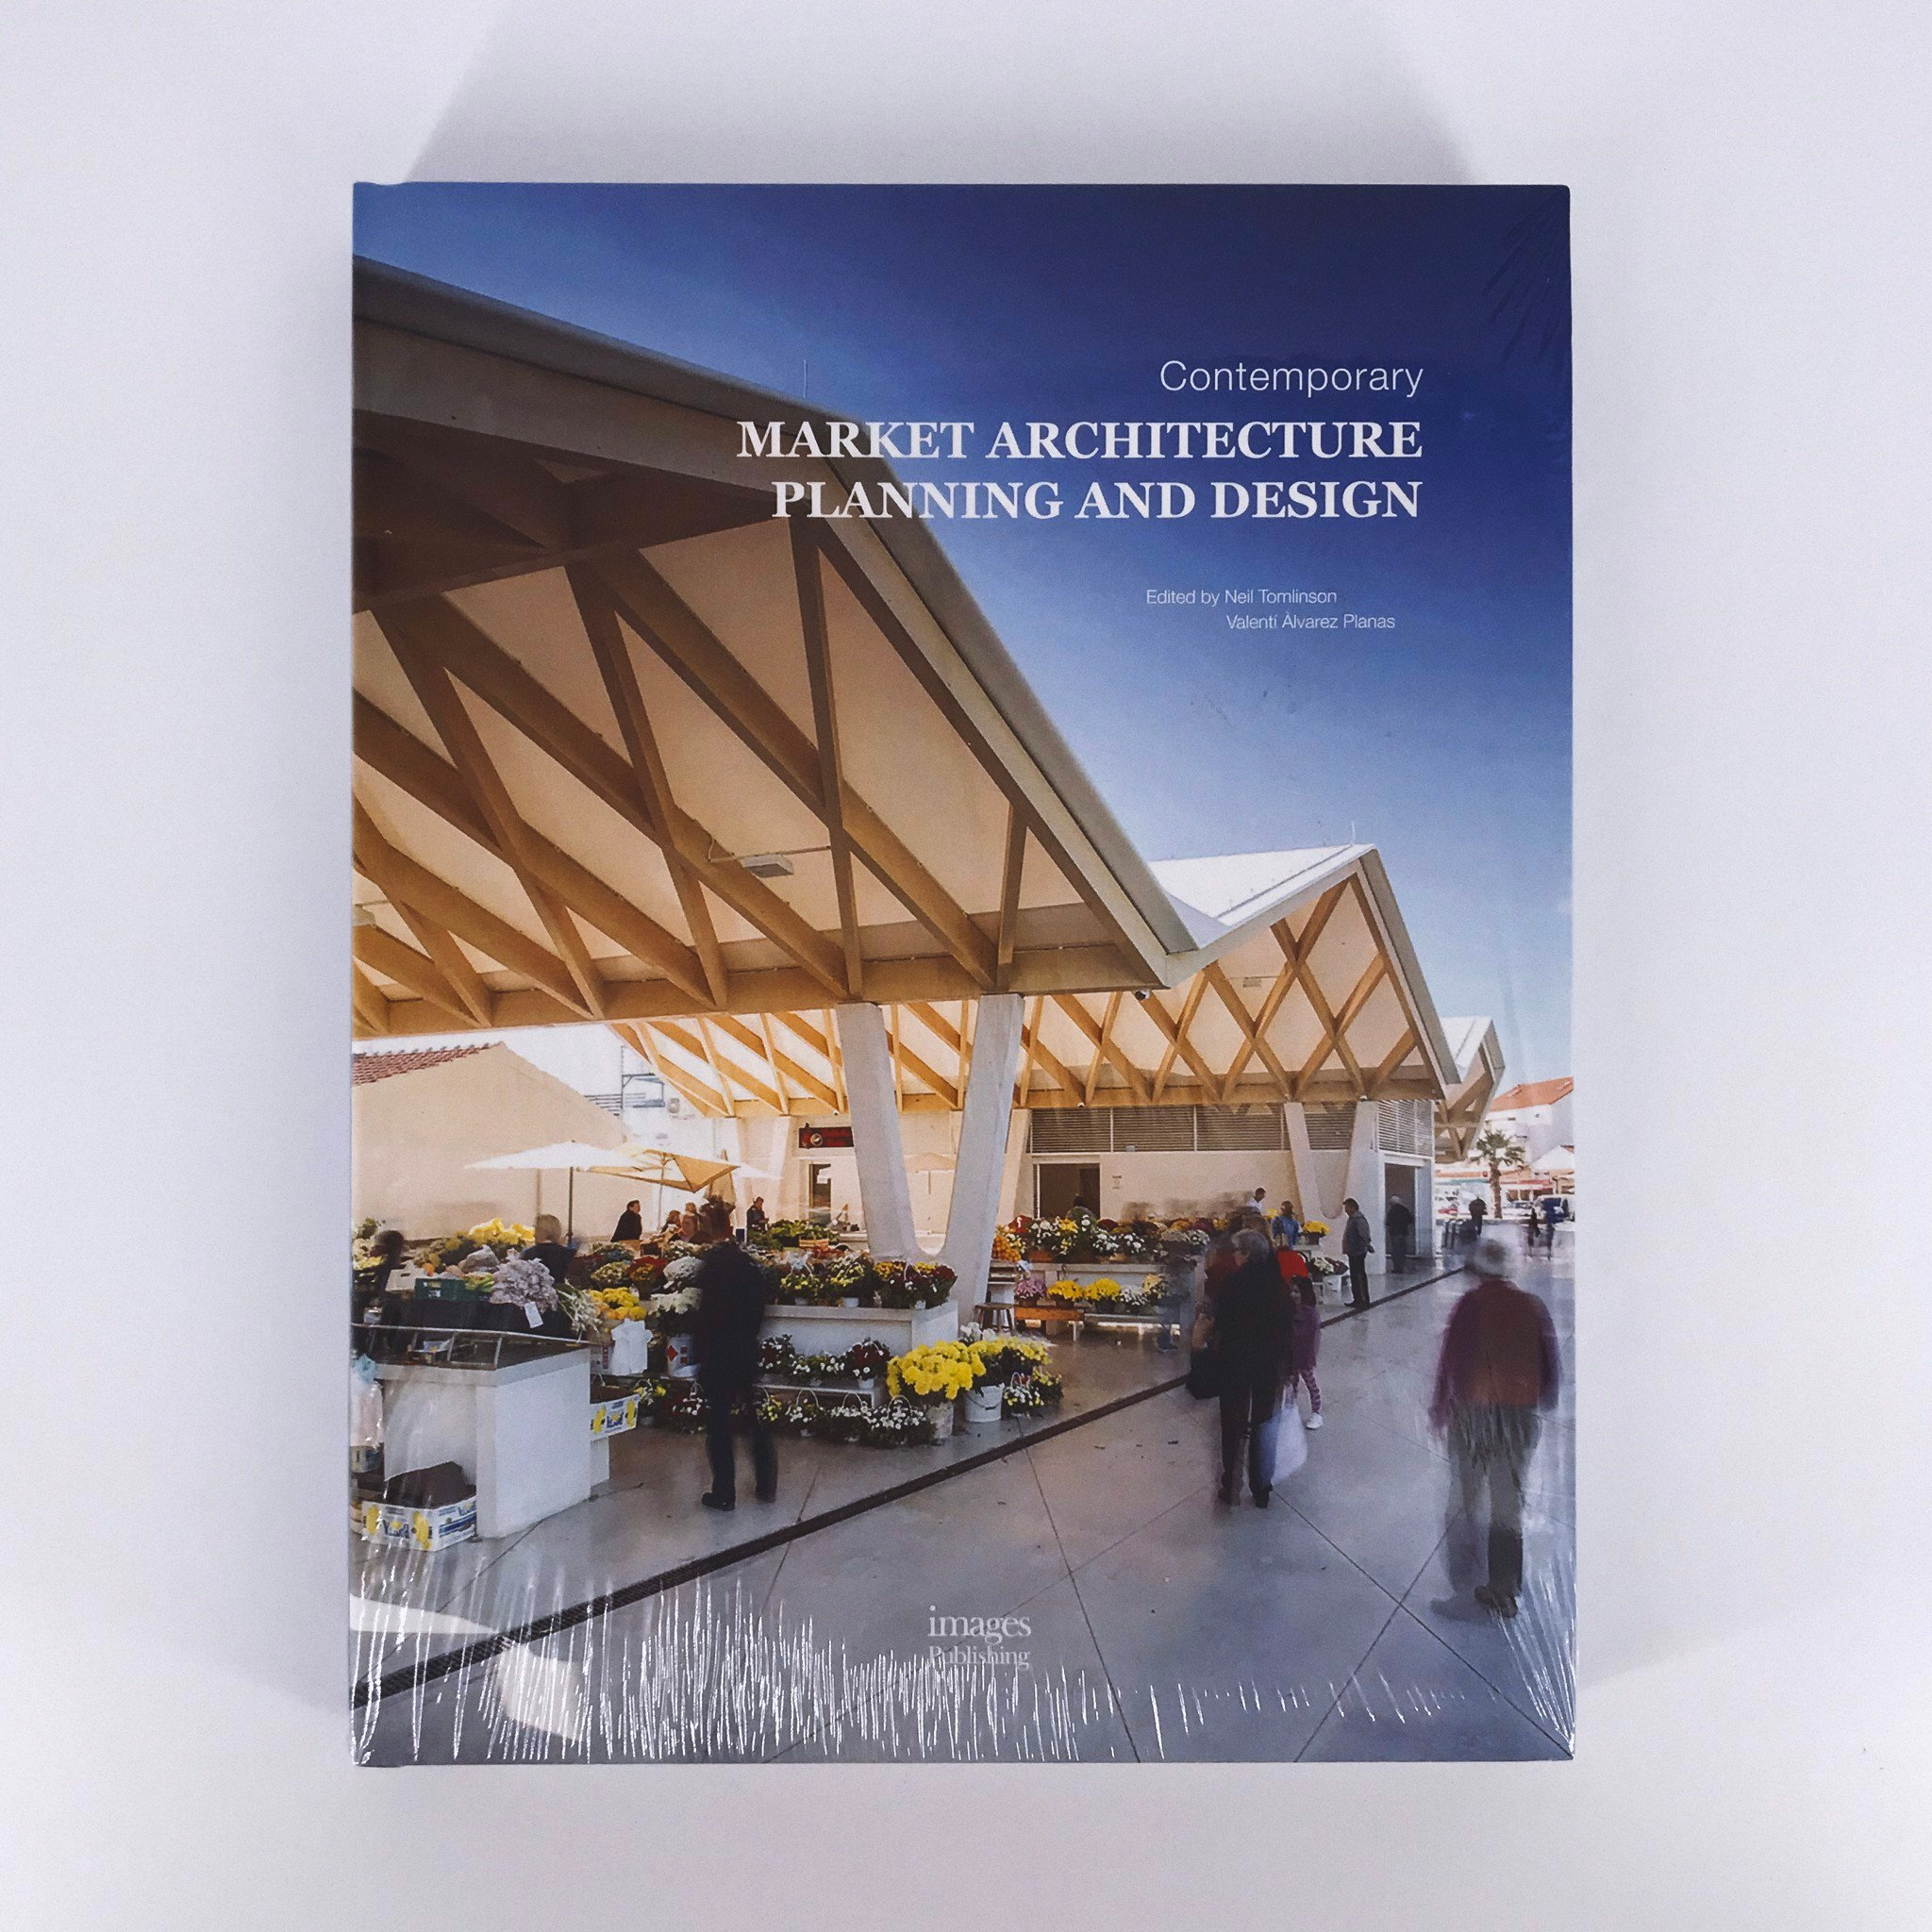 Contemporary Market Architecture : Planning and Design